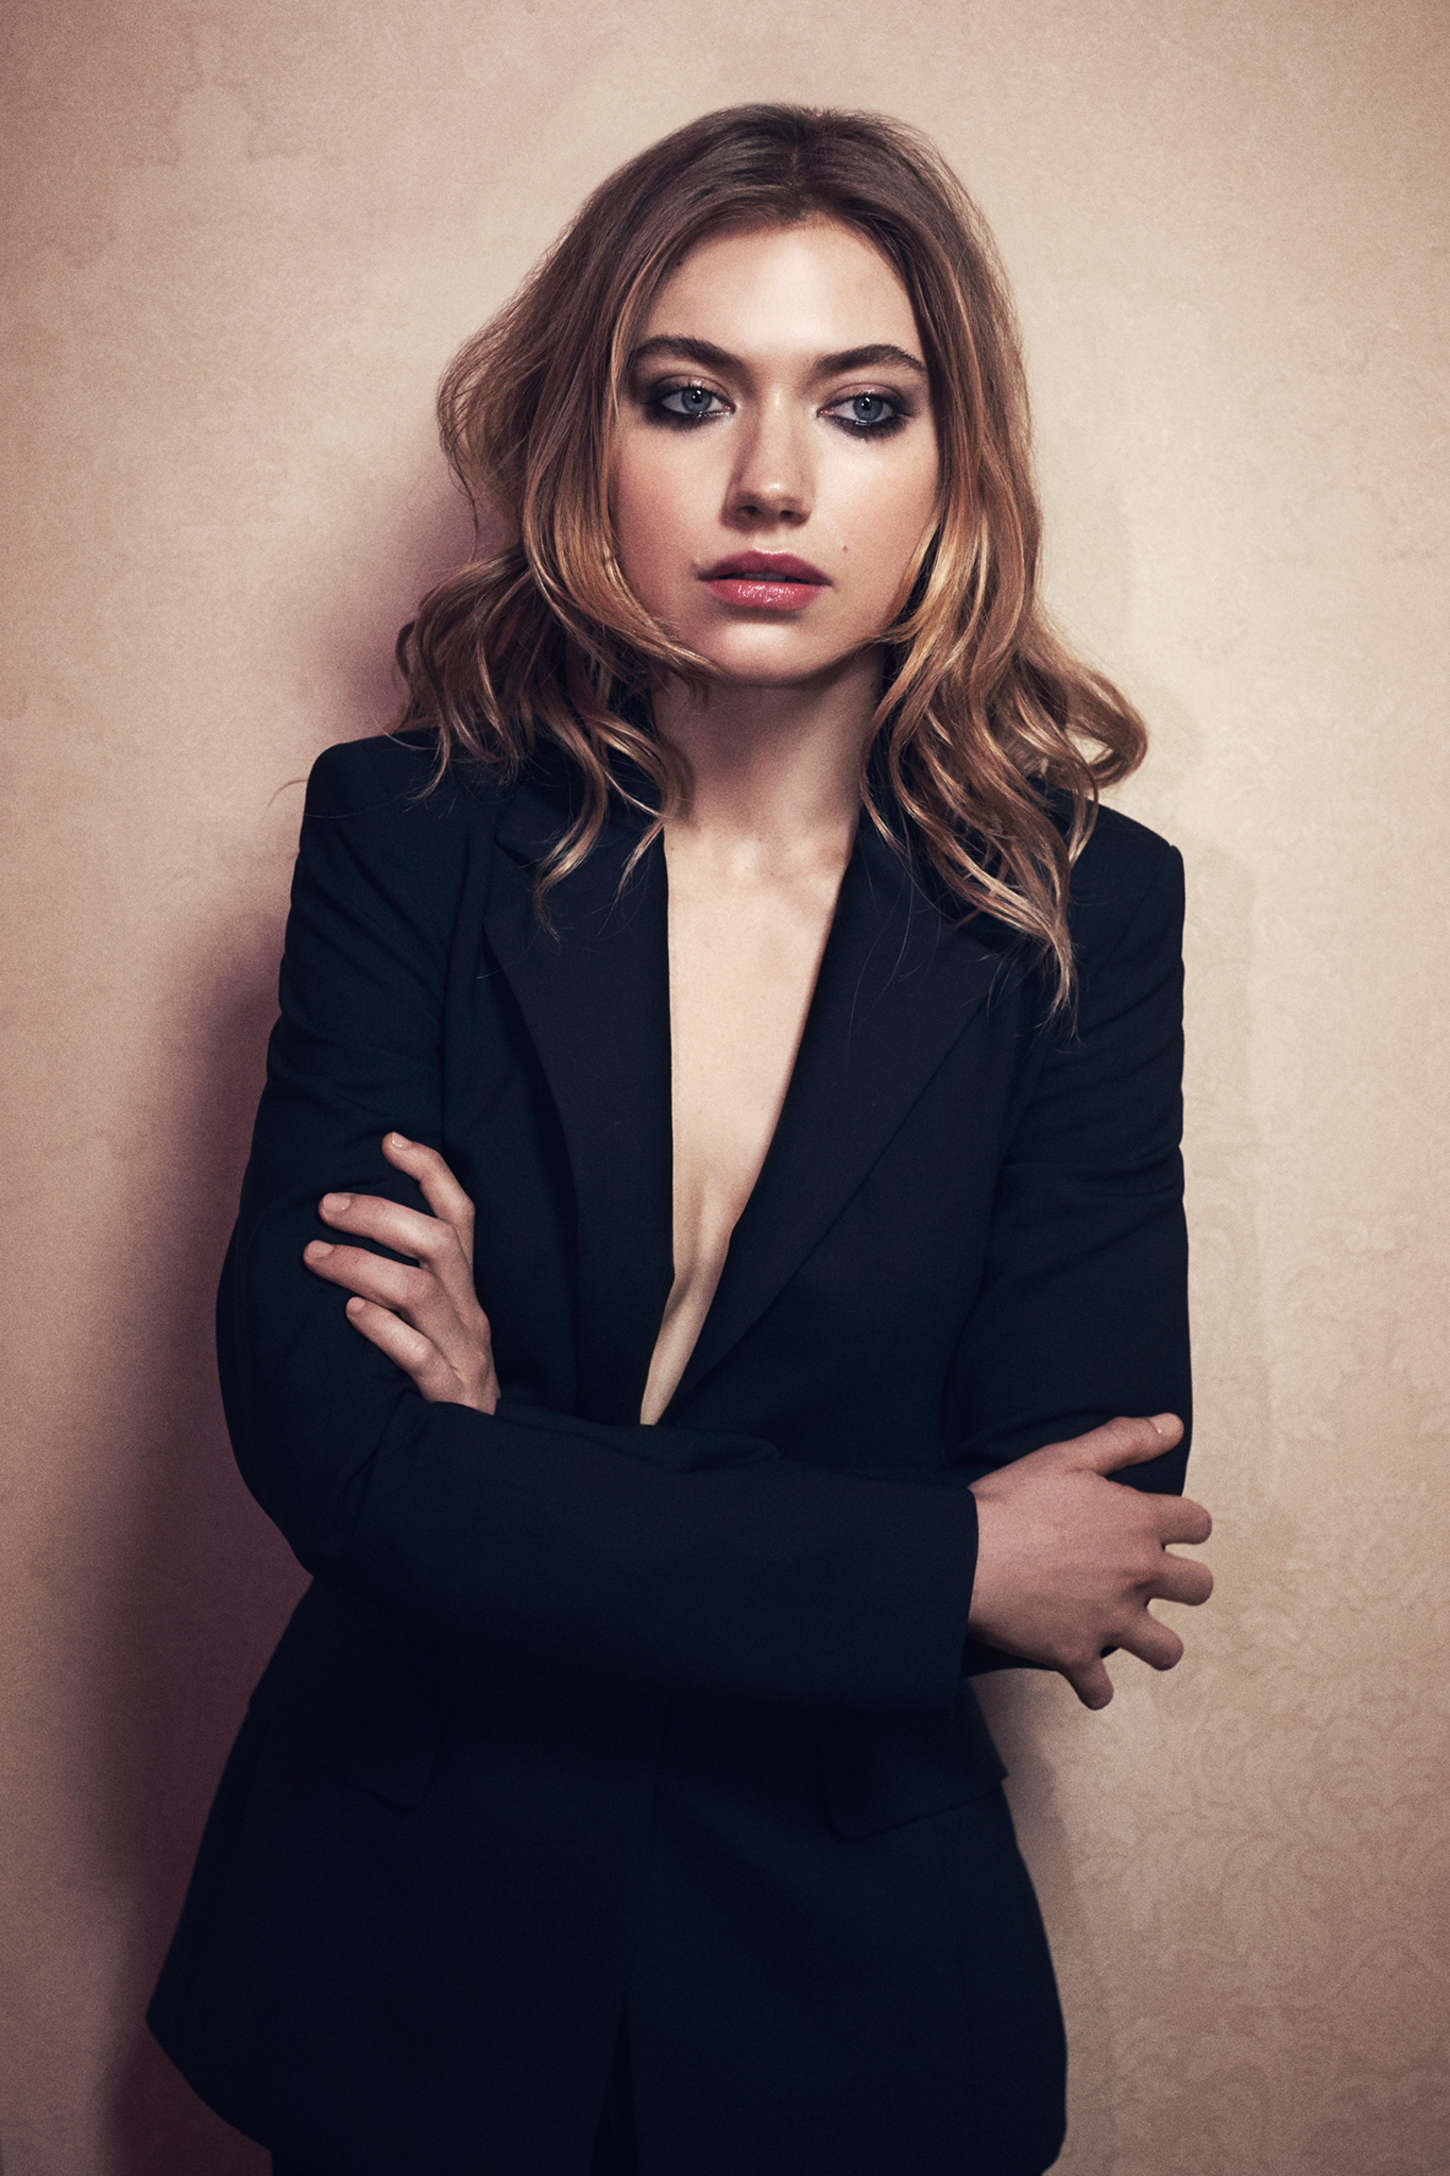 Imogen Poots nude (72 images) Pussy, Twitter, butt